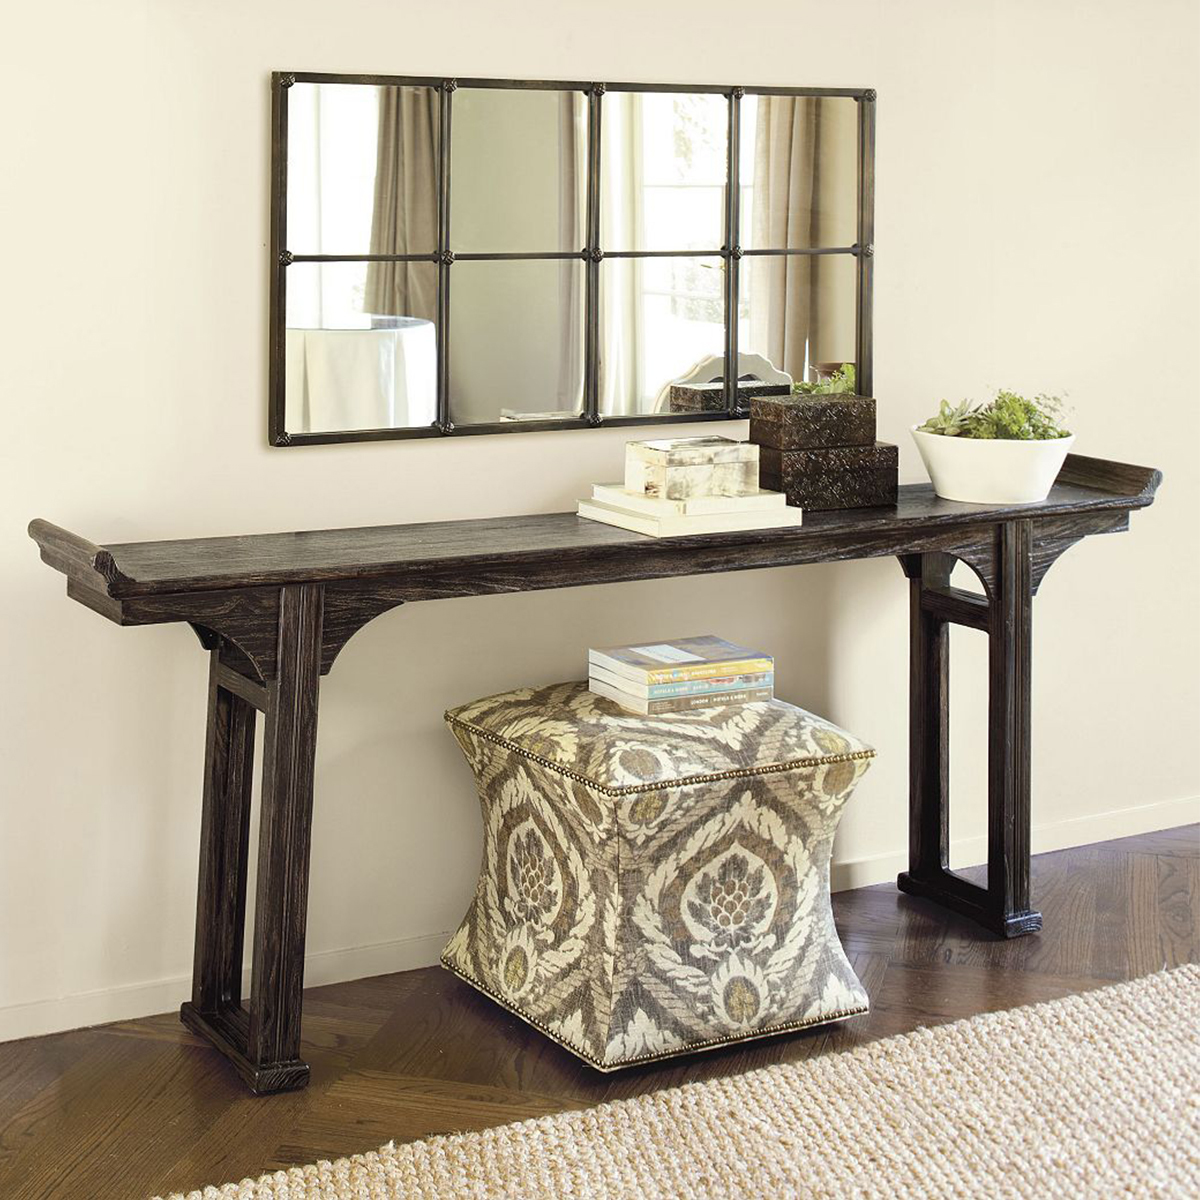 Rustic wooden serving table with a slender design photo